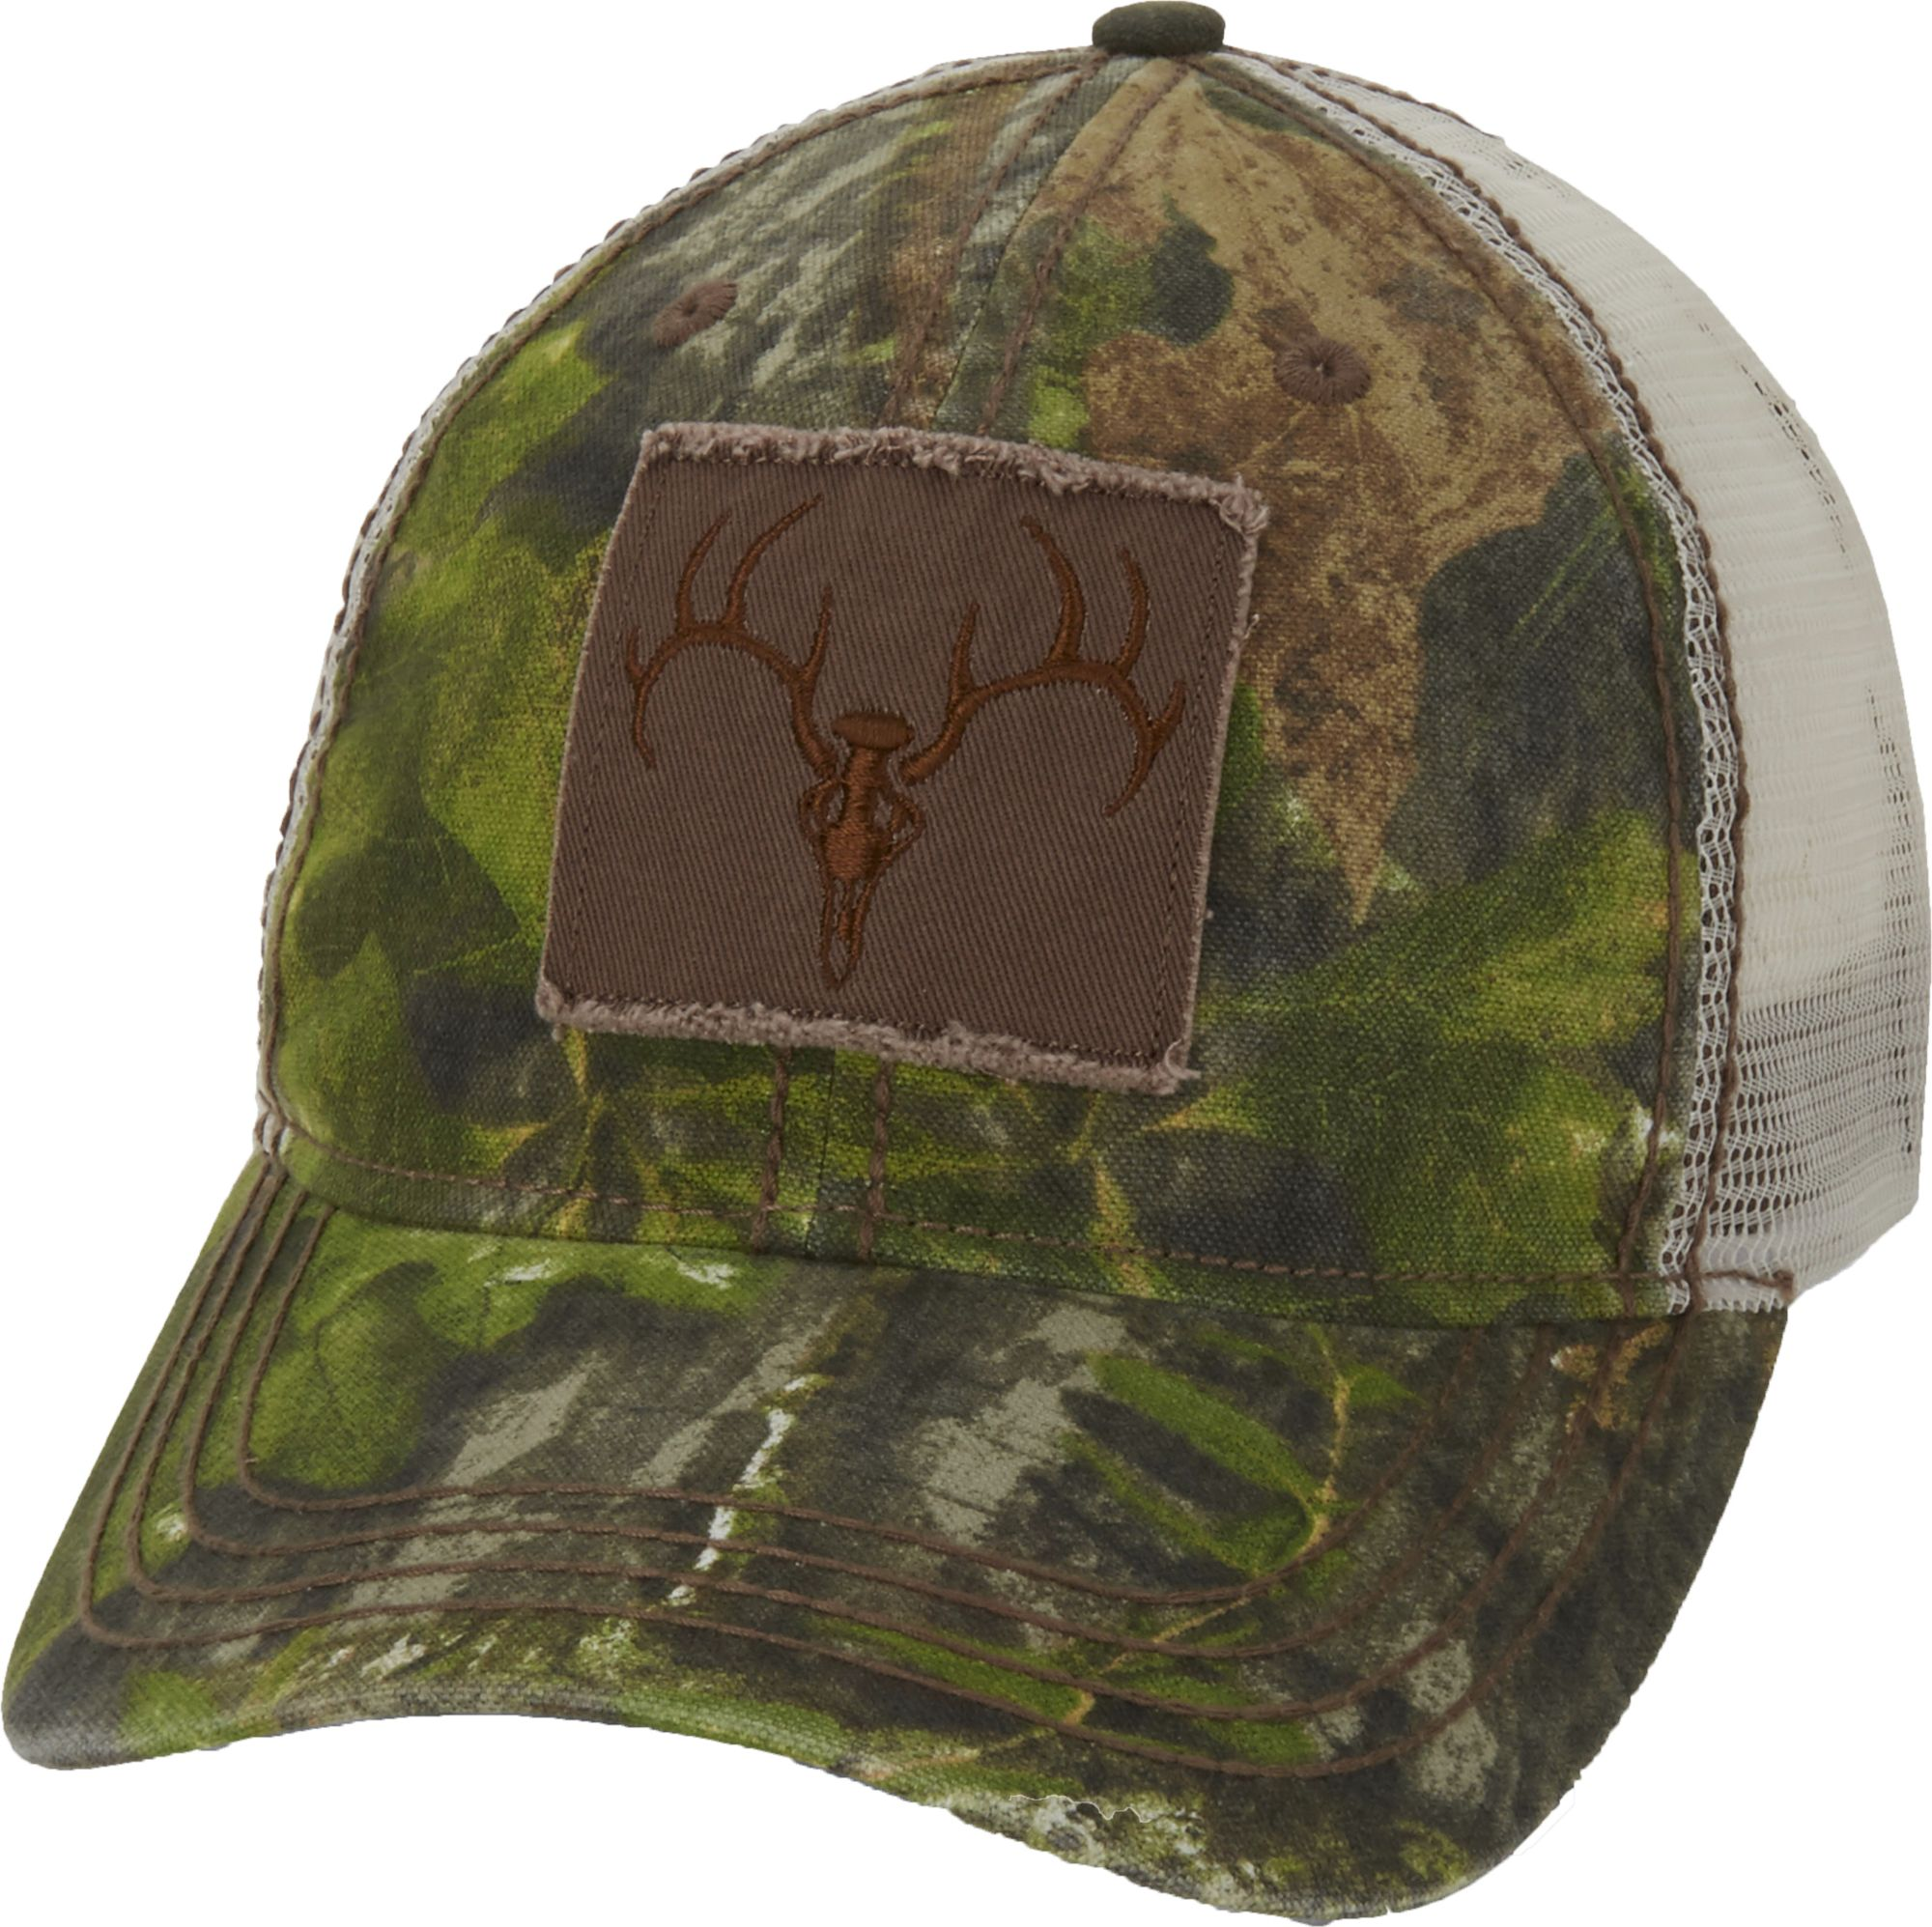 Field & Stream Men's Frayed Patch Mesh Back Hat, Mossy Oak Obsession Nwtf thumbnail